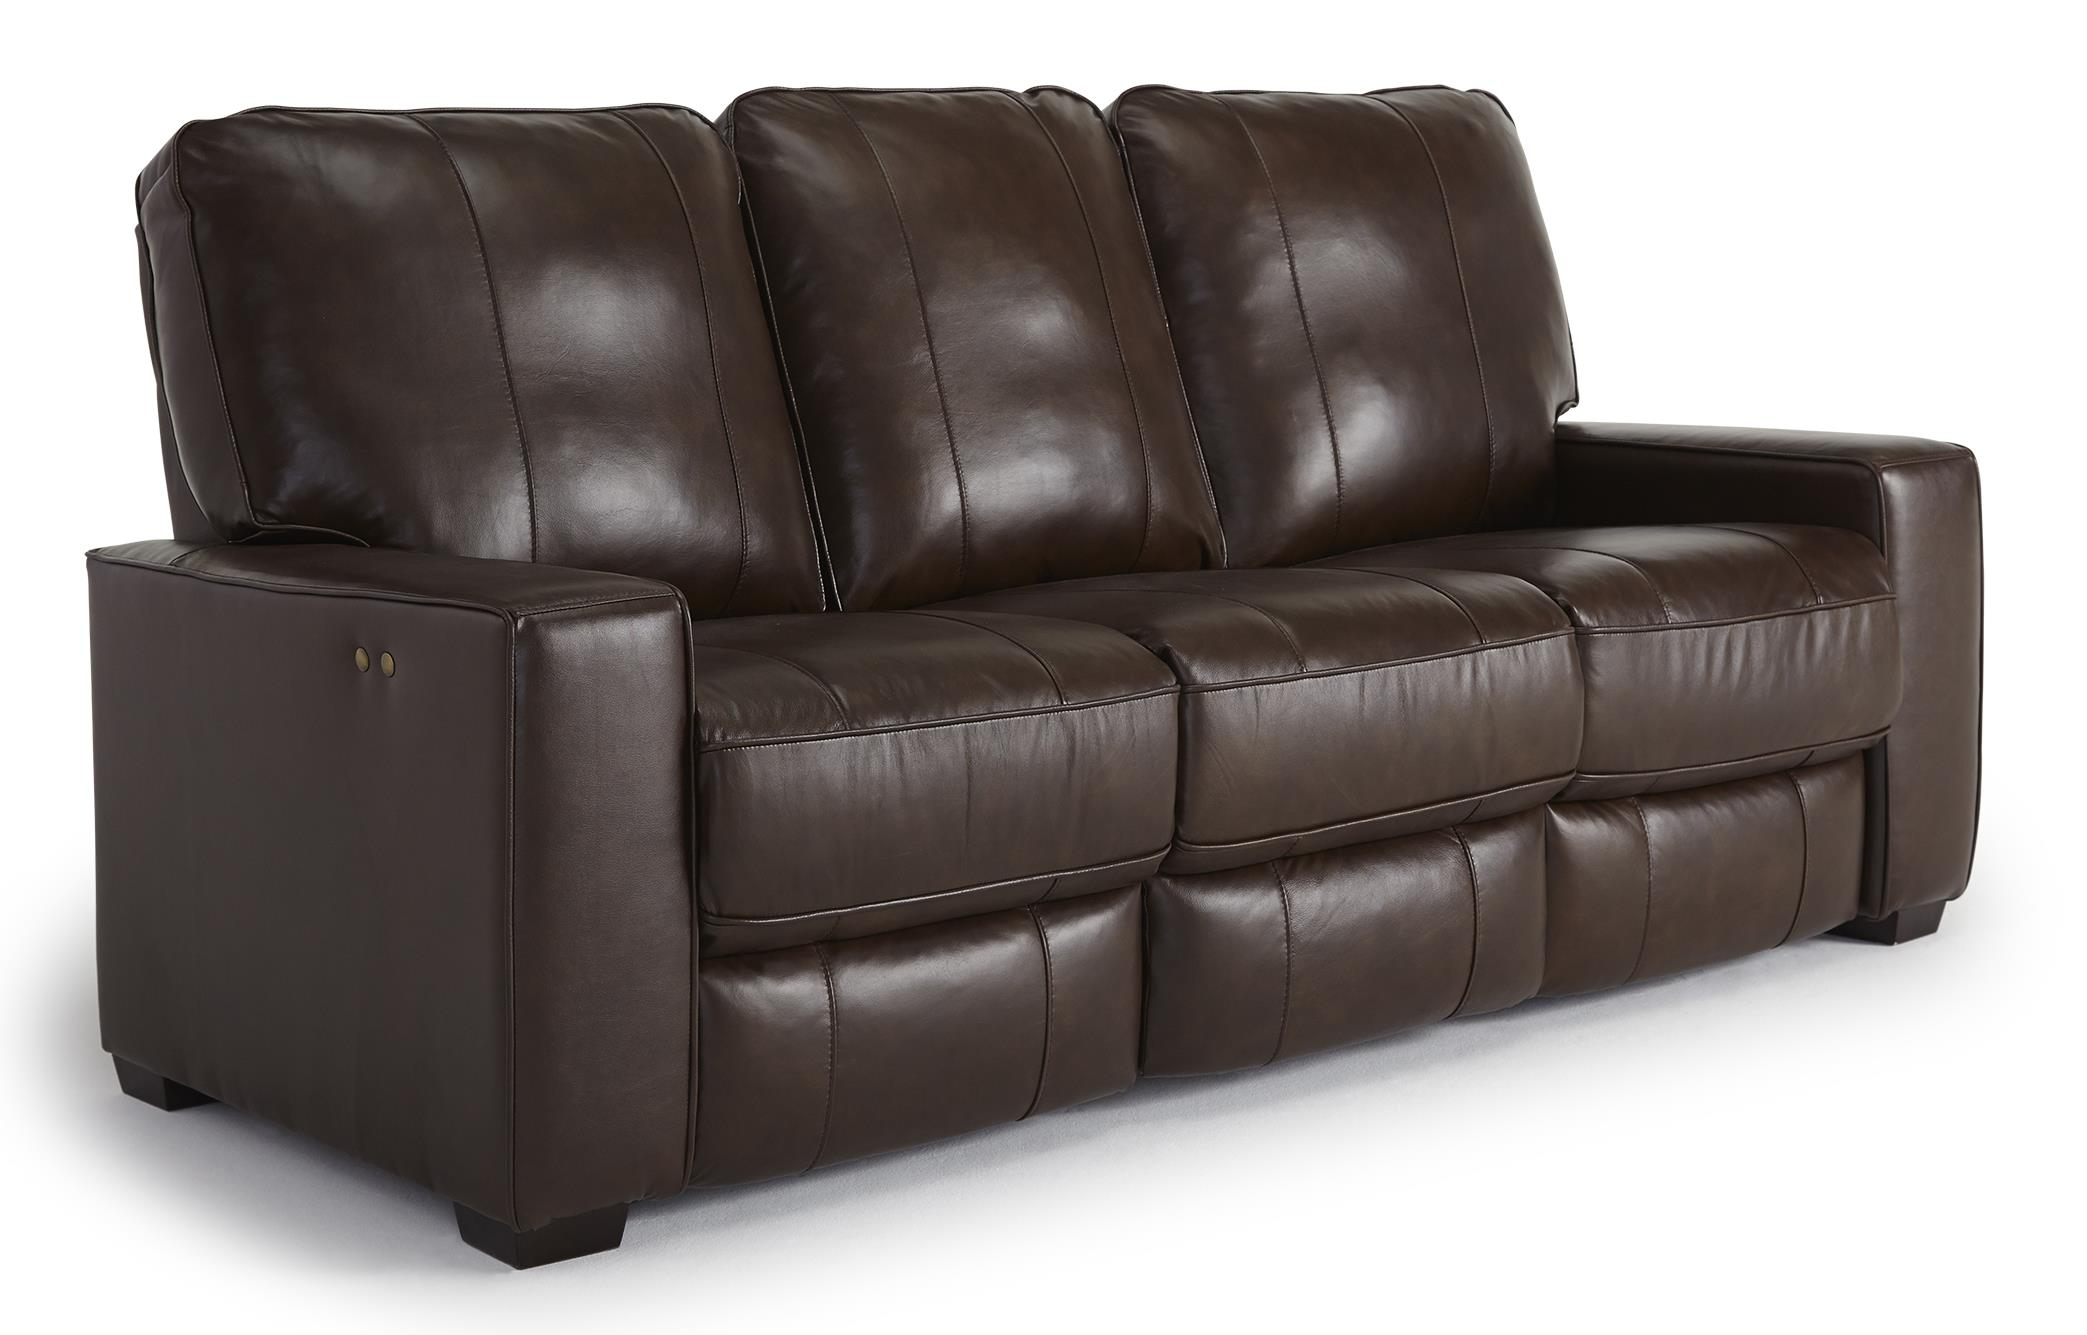 Best Home Furnishings Celena Power Reclining Sofa - Item Number: S906CP2-73216SL